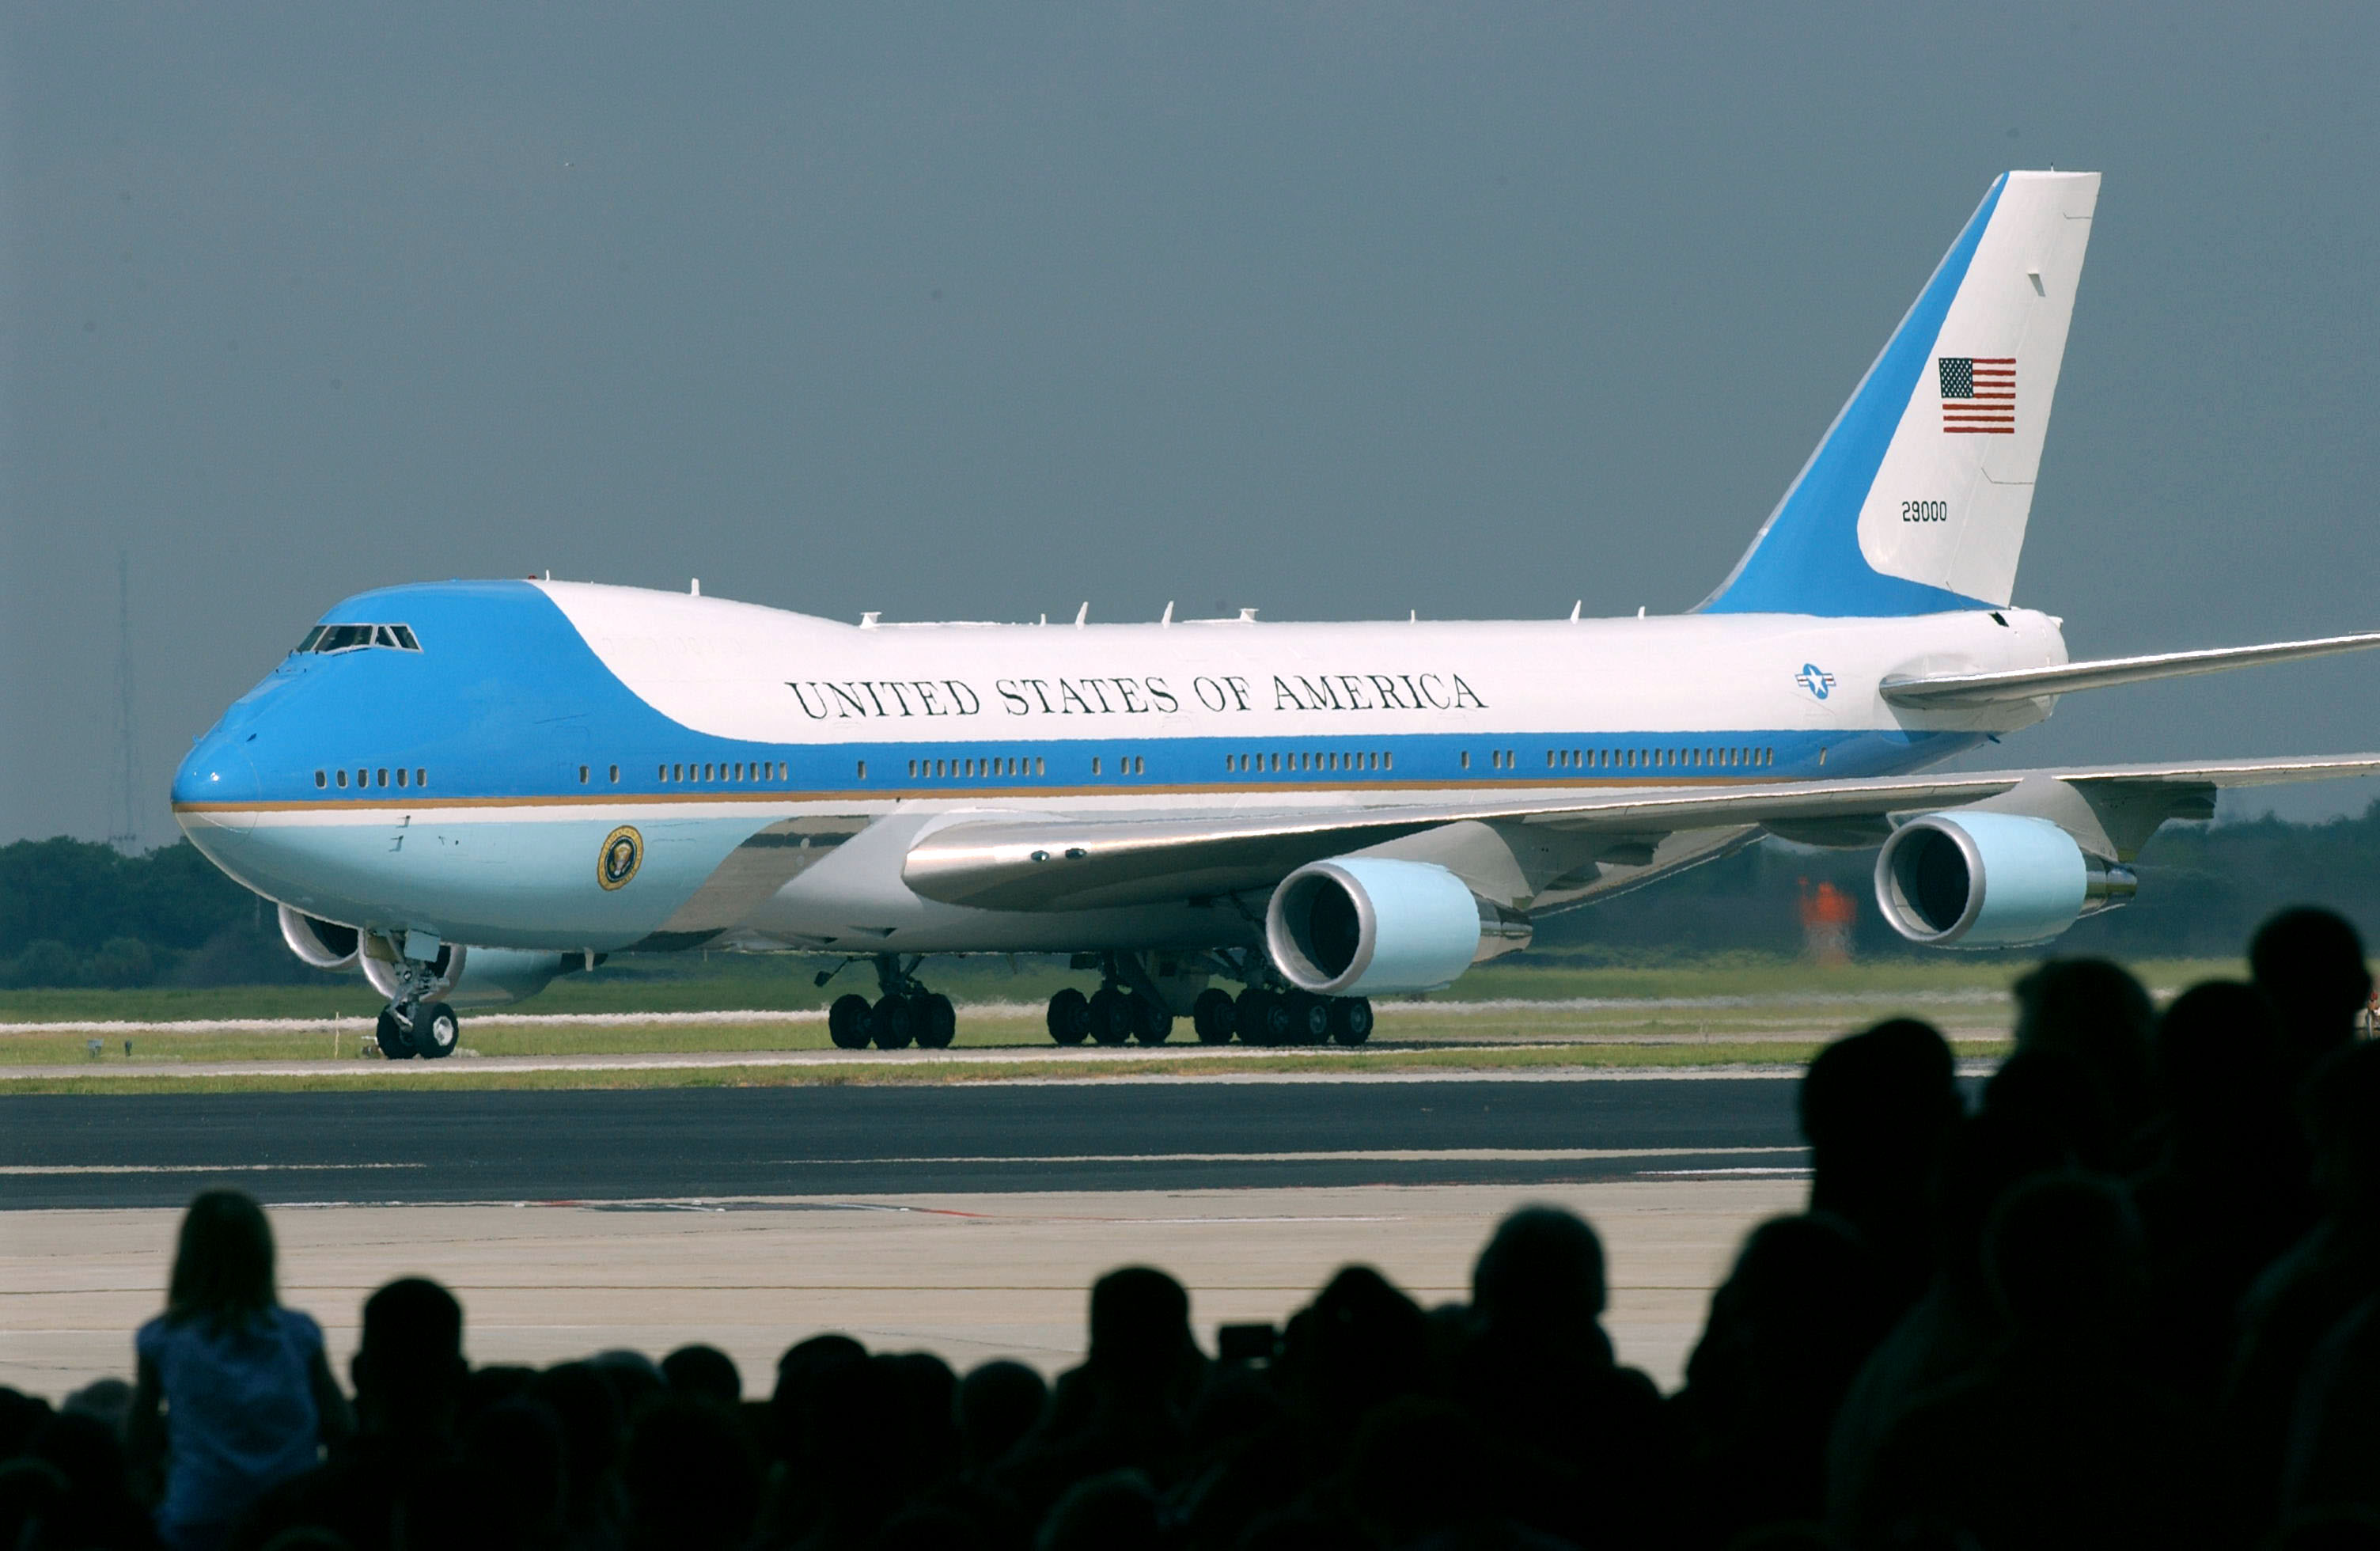 Trump wanted a cheaper Air Force One. So the USAF is buying a bankrupt Russian firm's undelivered 747s Featured